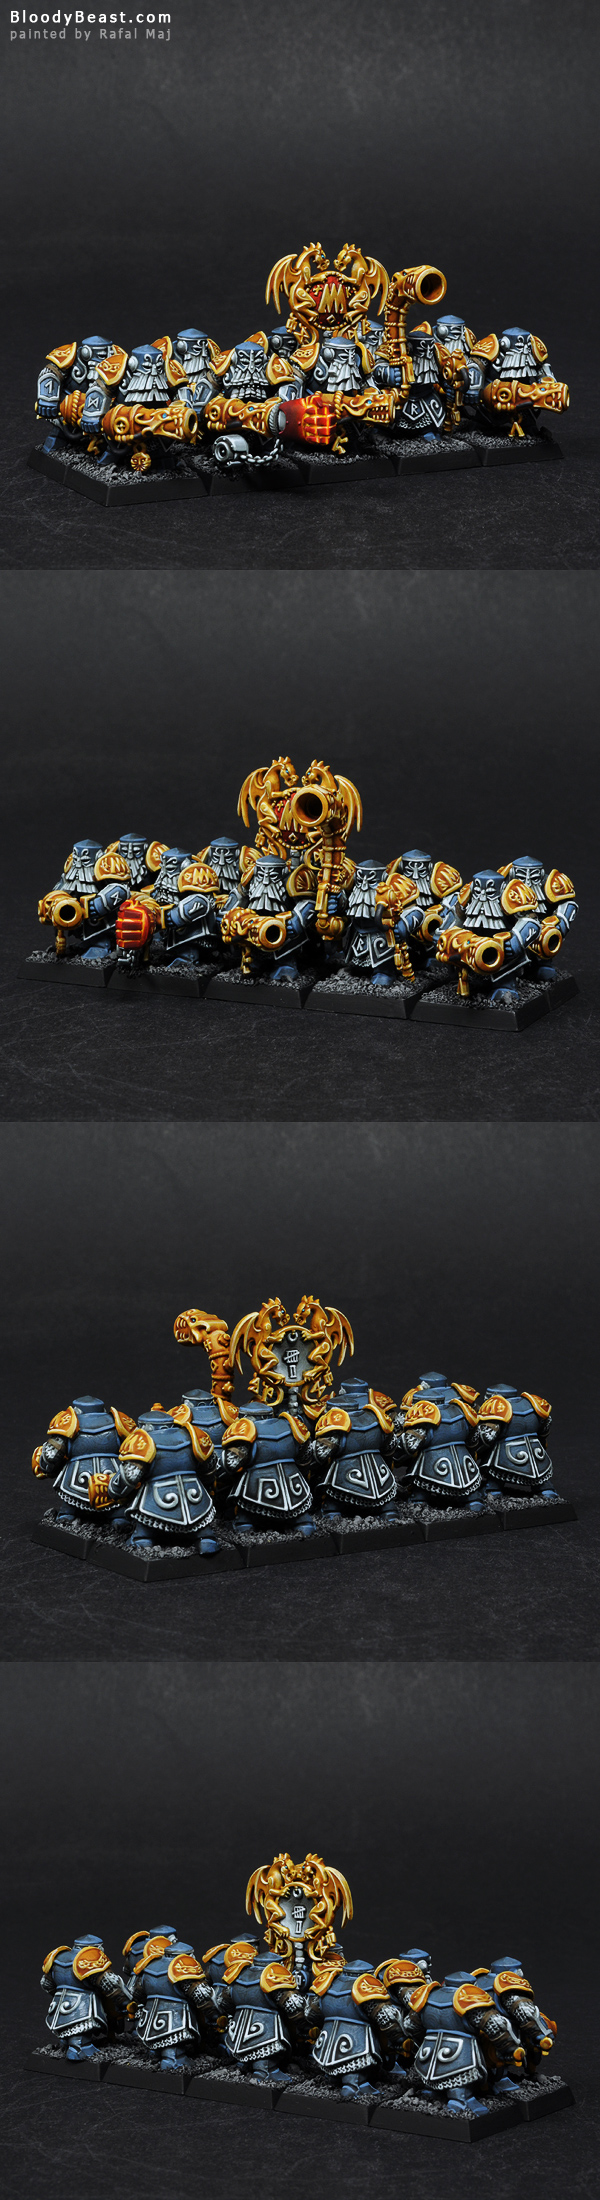 Dwarf Irondrakes painted by Rafal Maj (BloodyBeast.com)